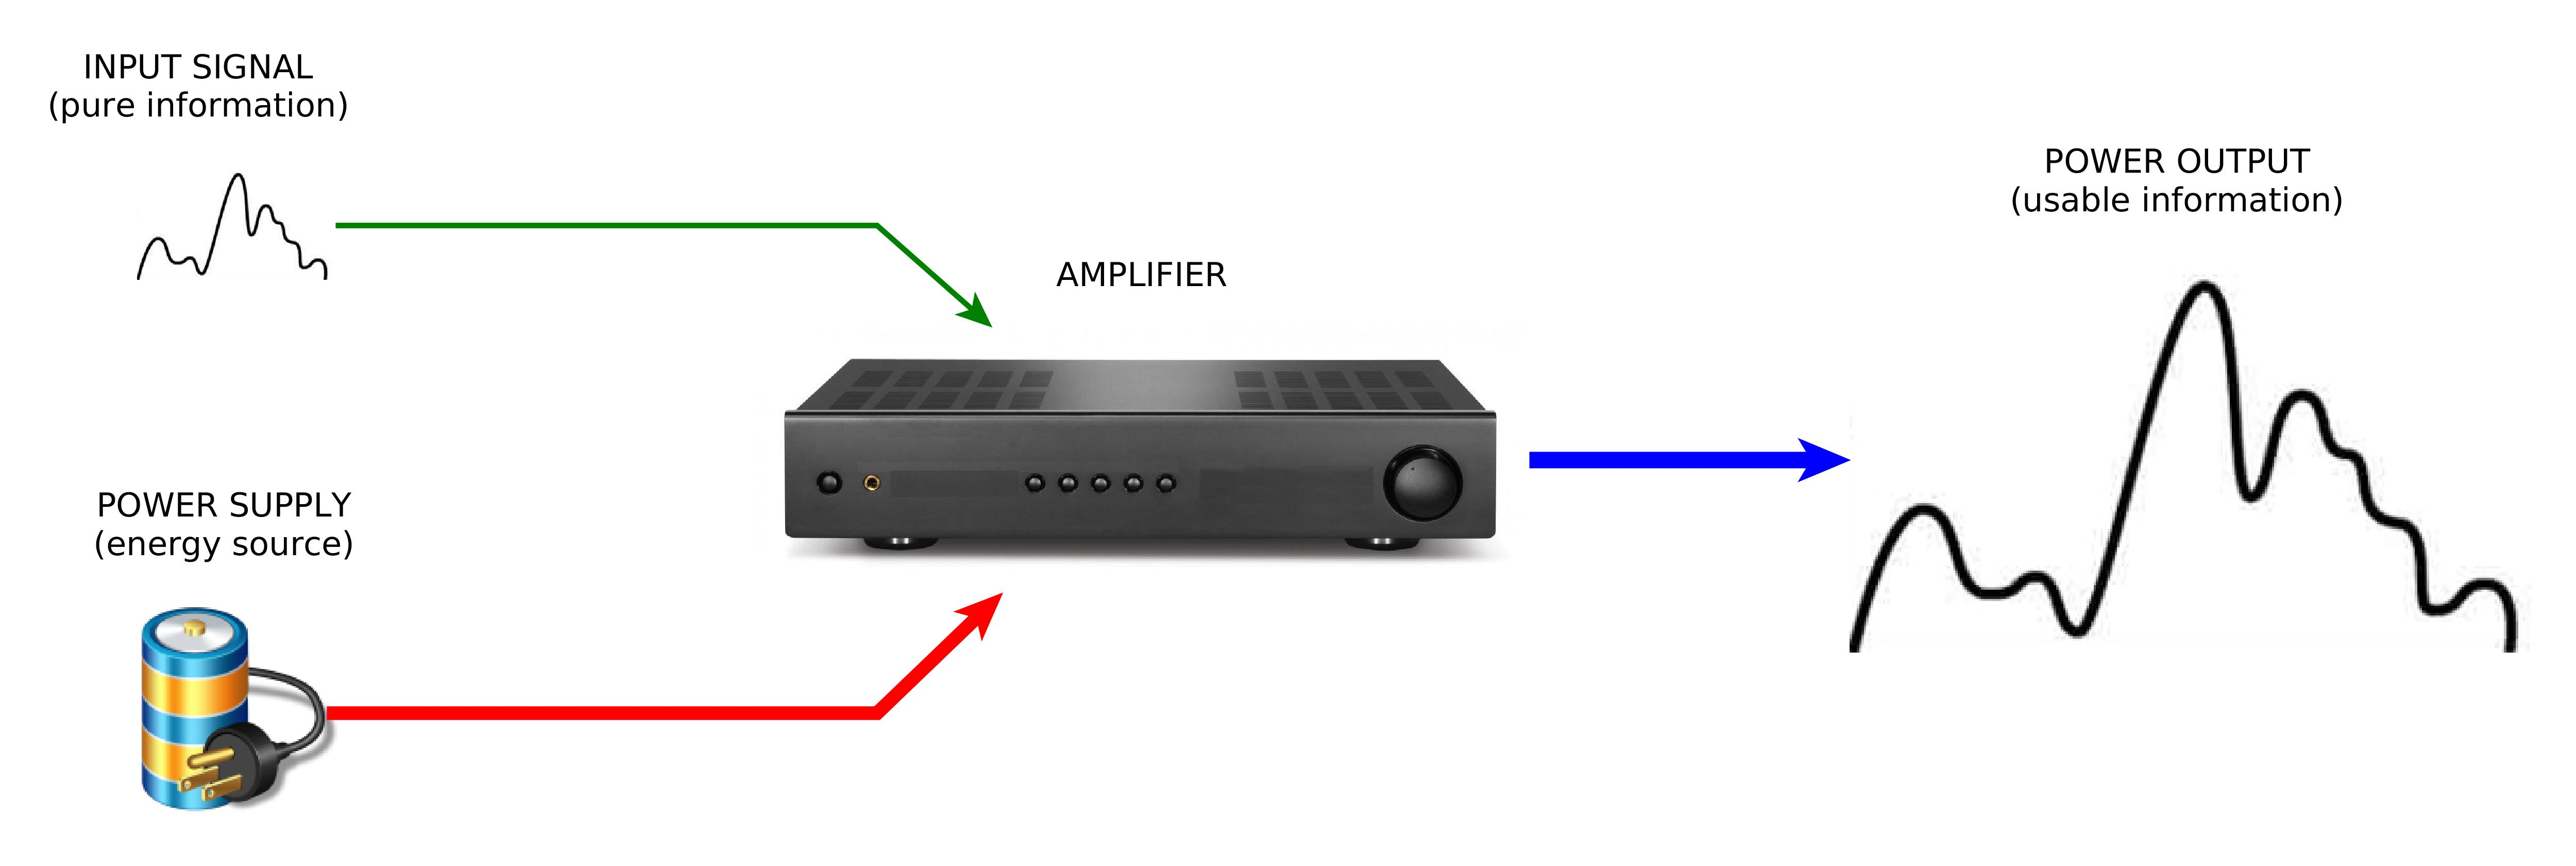 An amplifier, conceptually, is an object with two inputs and one output.